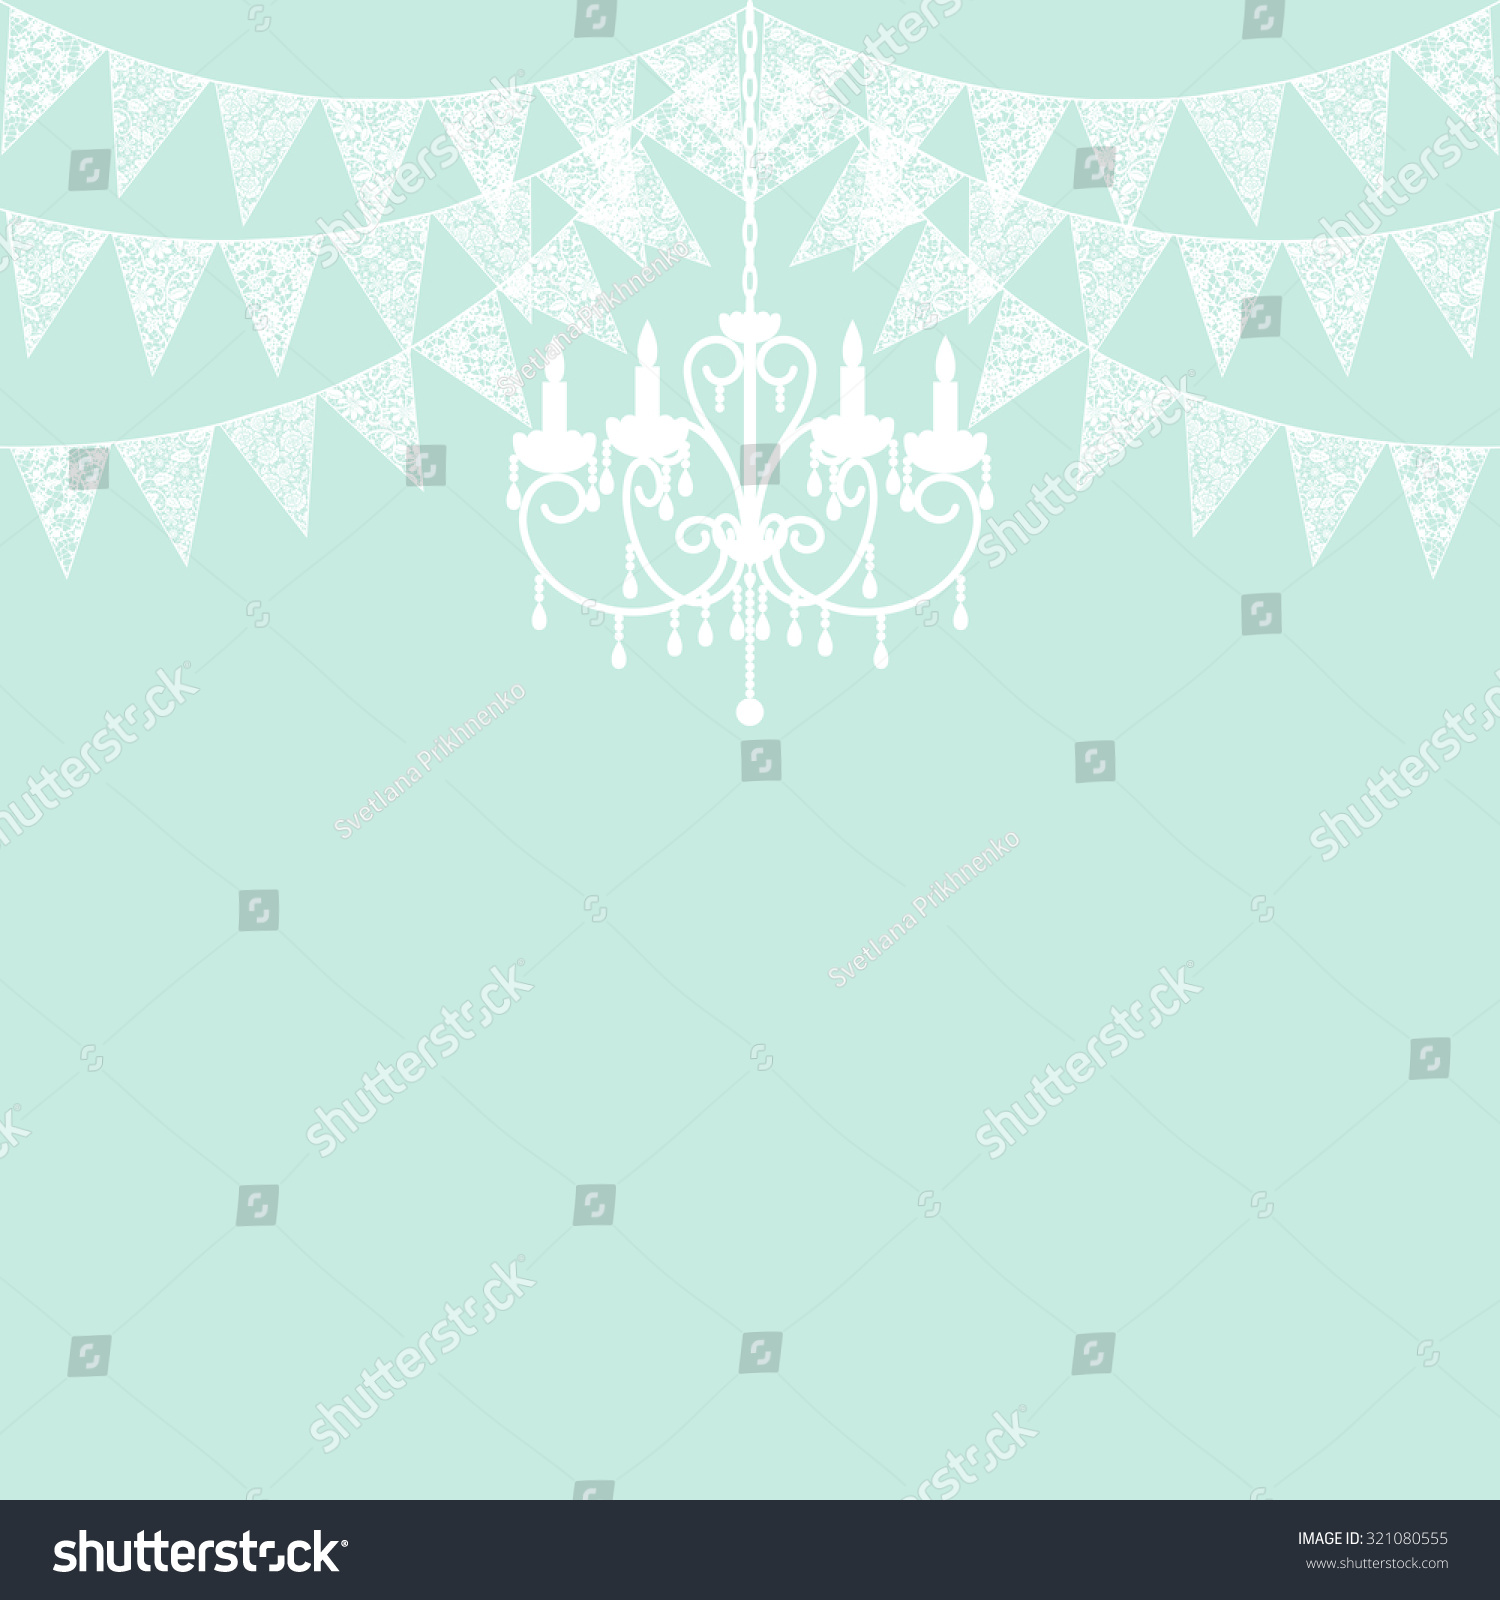 Wedding invitation card template white lace stock vector 2018 wedding invitation card template with white lace bunting and chandelier on green background arubaitofo Gallery